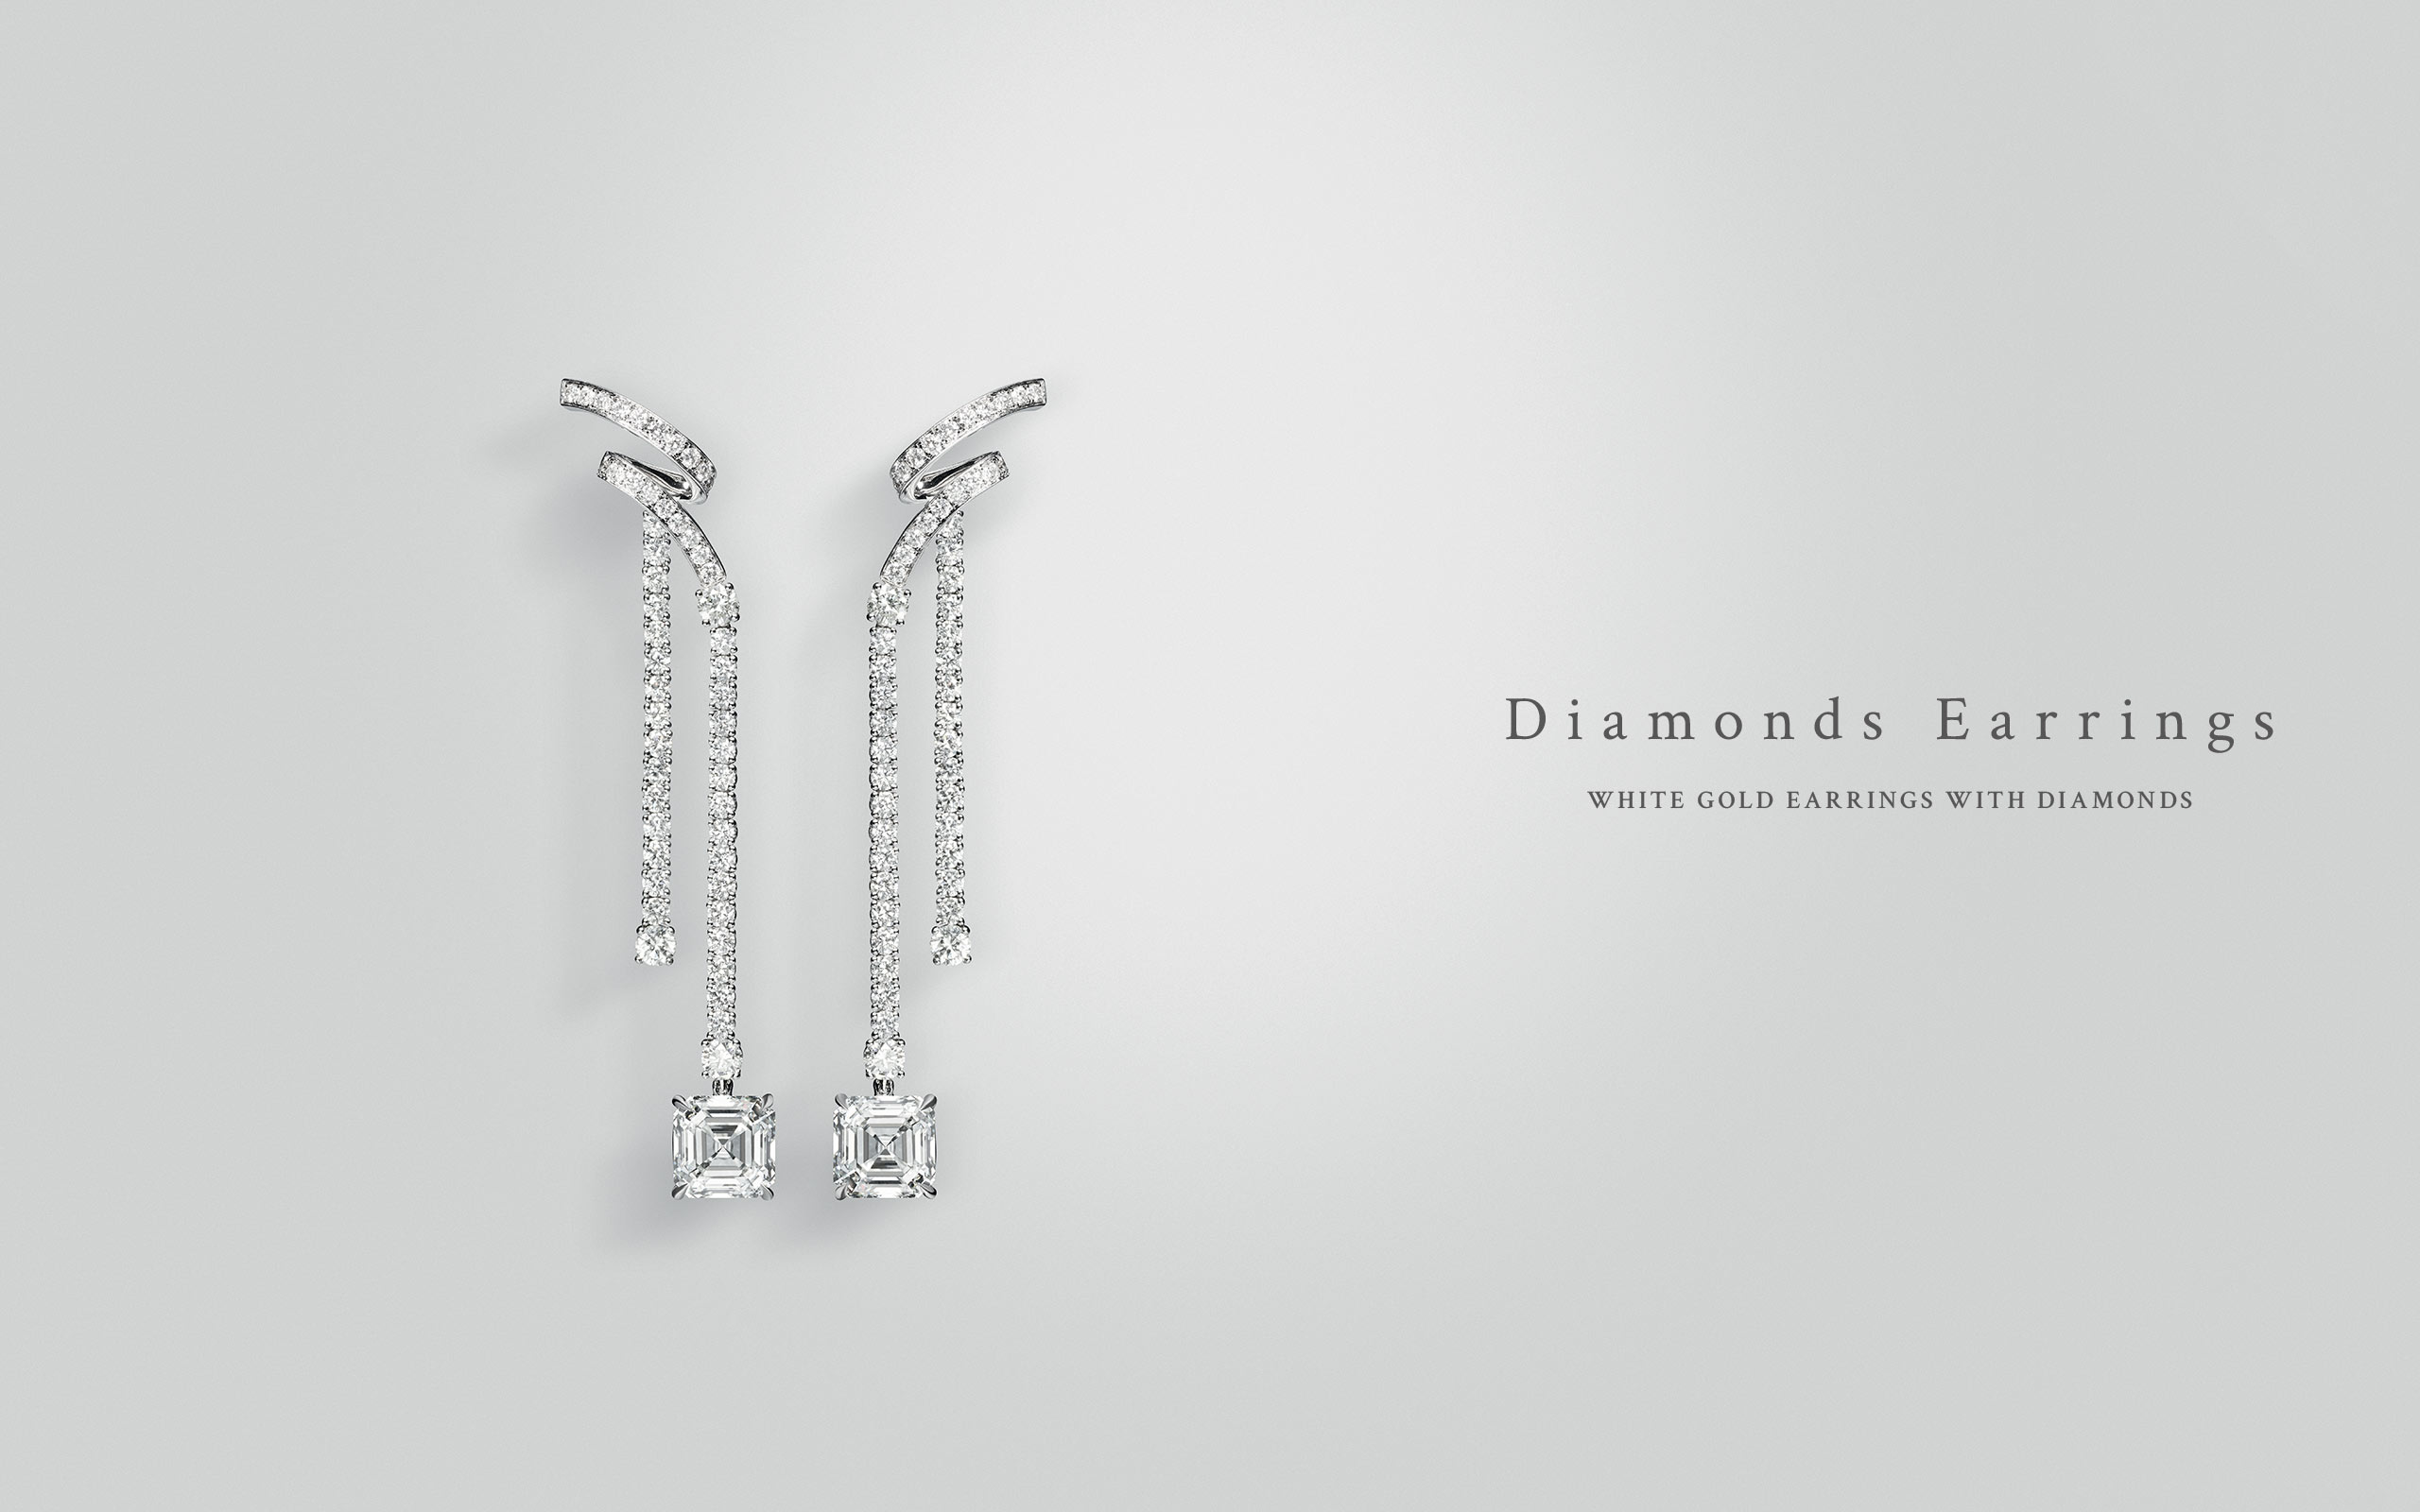 Diamonds Earrings 12 | Maria Gaspari